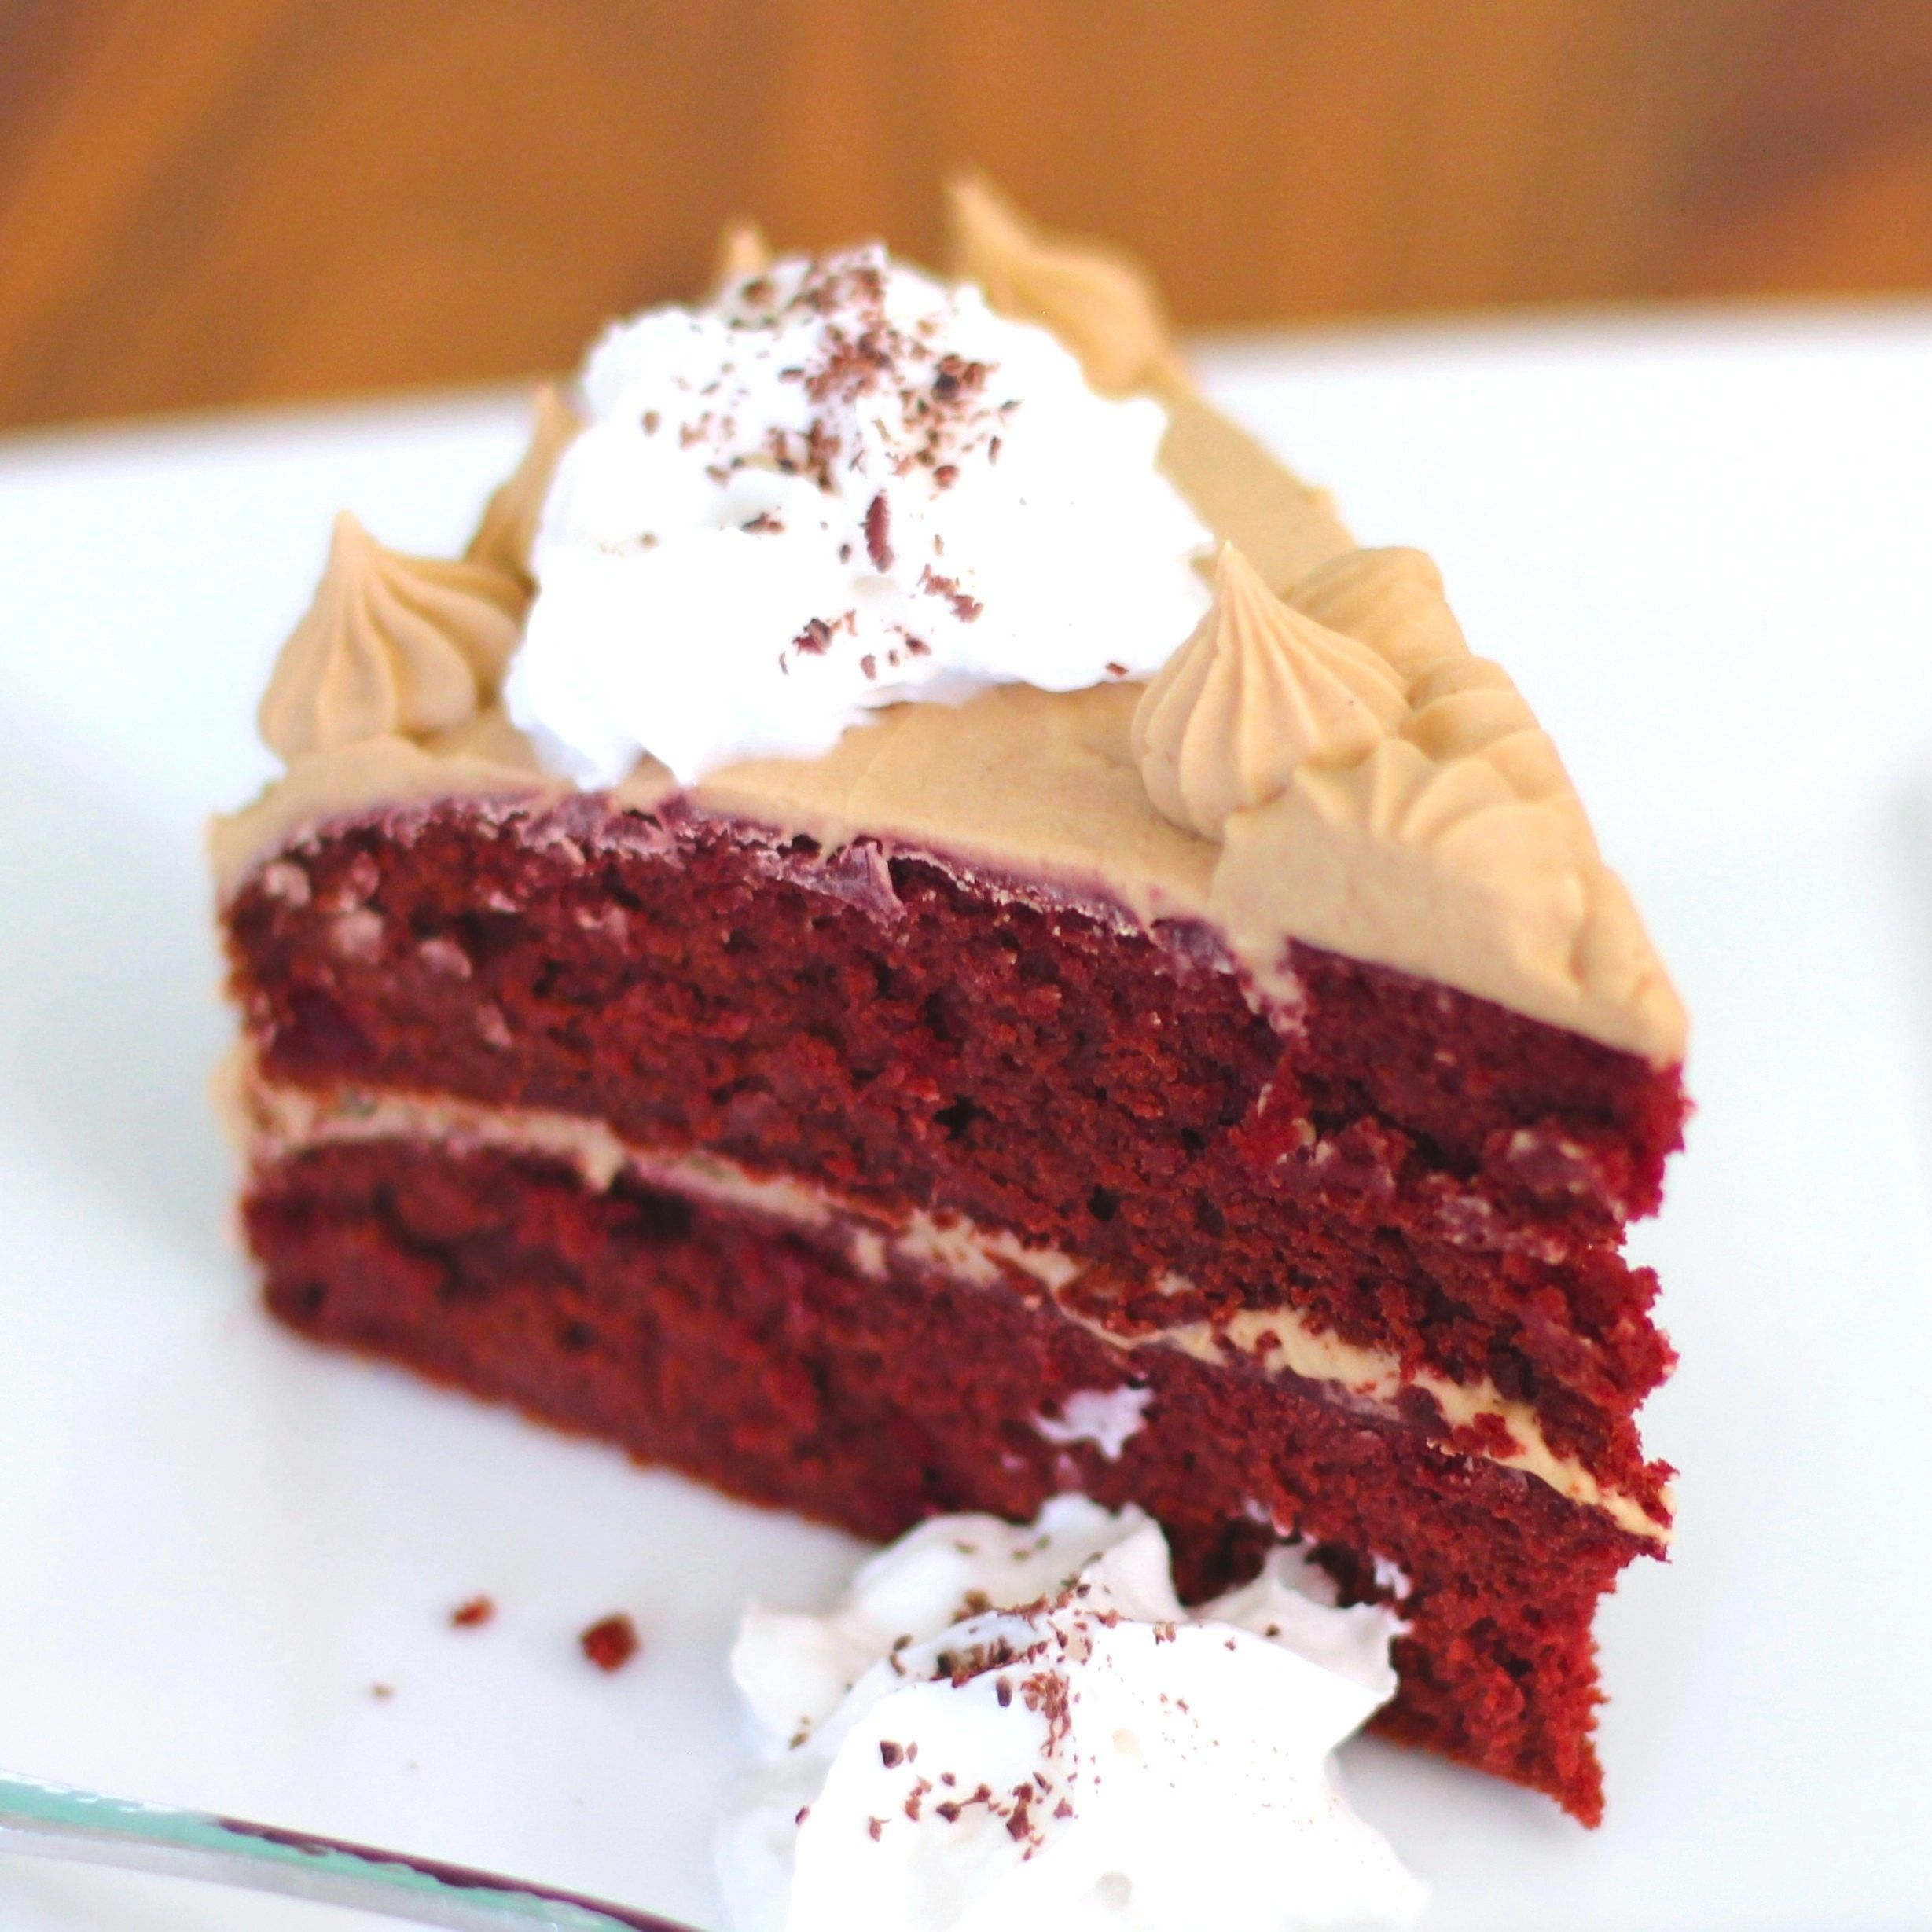 Healthy Red Velvet Cake With Cream Cheese Frosting Recipe